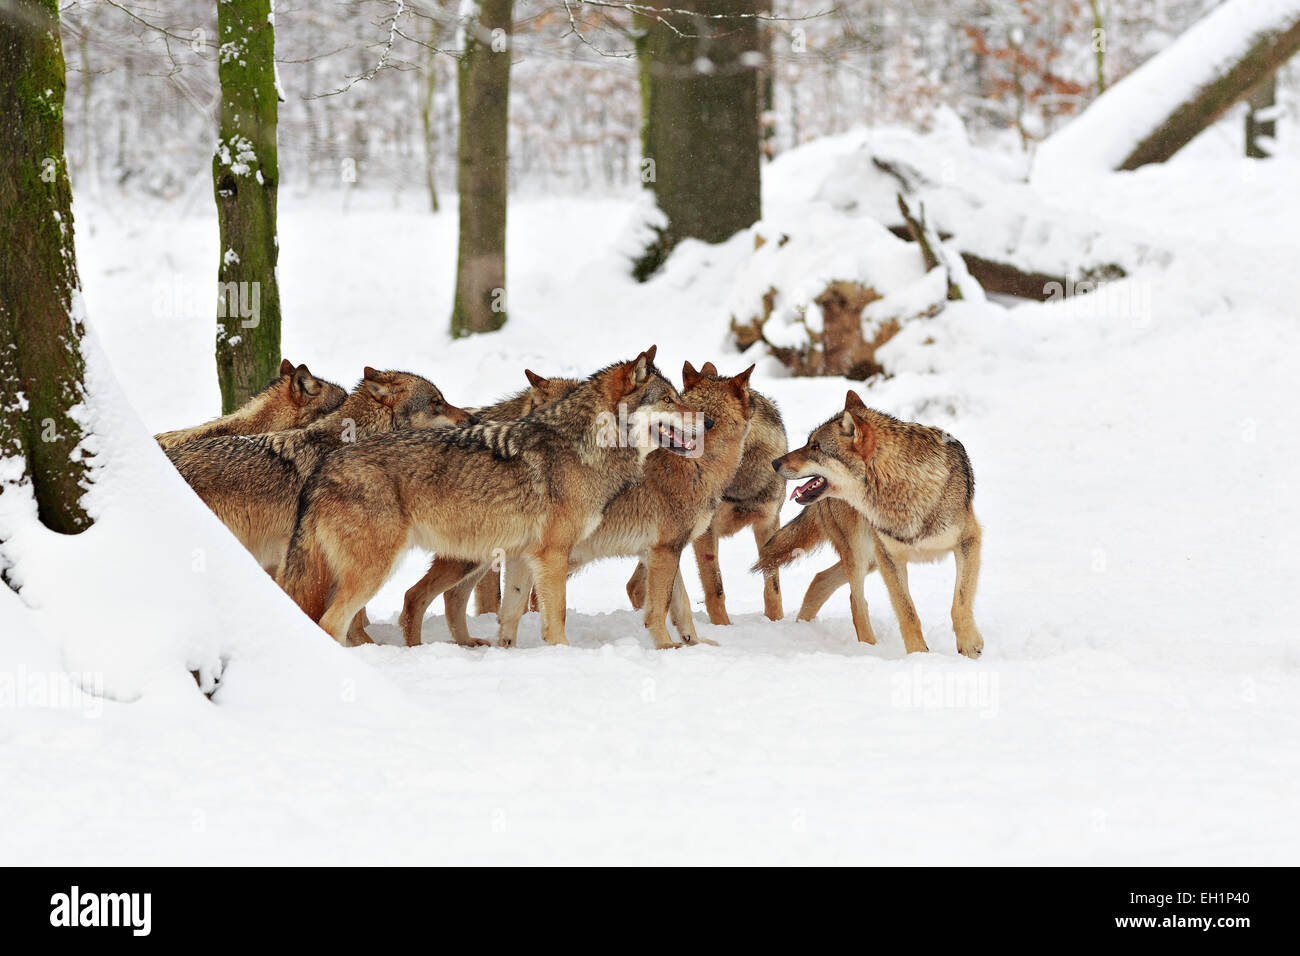 Wolves (Canis lupus) in the snow, wolf pack, Neuhaus wildlife park, Neuhaus im Solling, Lower Saxony, Germany - Stock Image